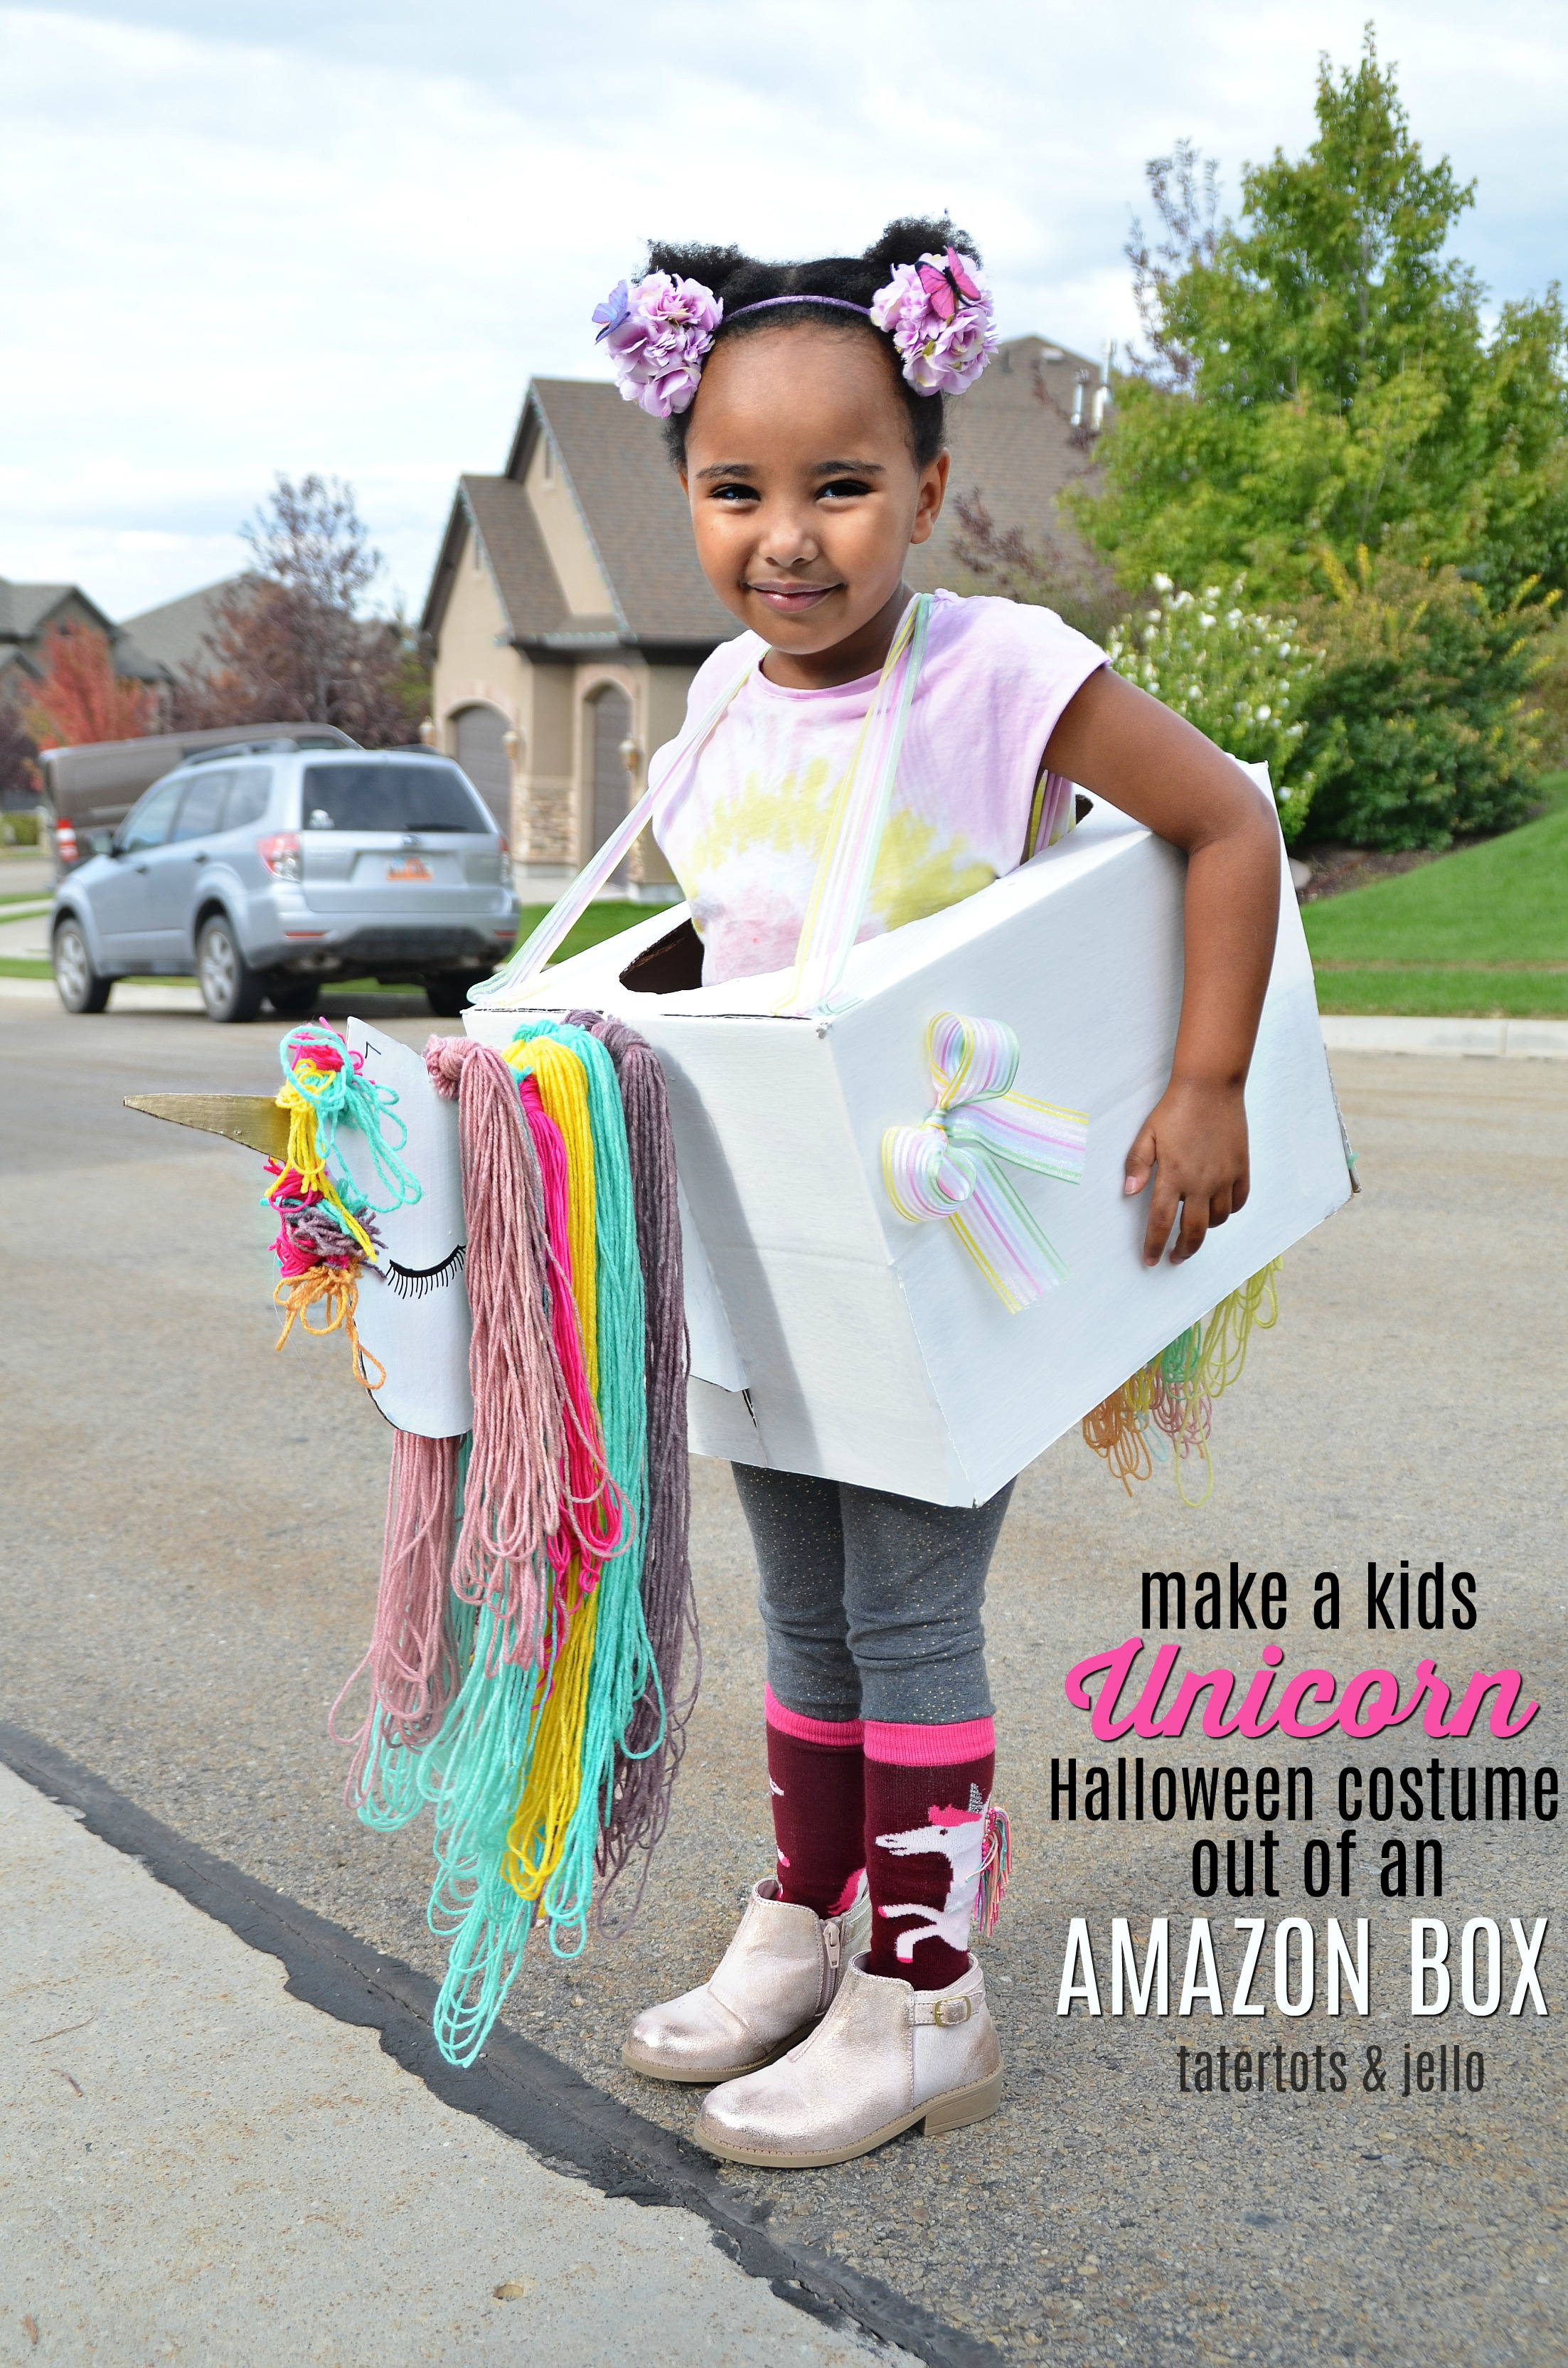 Make a Kids Unicorn Costume Out of Amazon Smile Boxes ? with free unicorn head template!